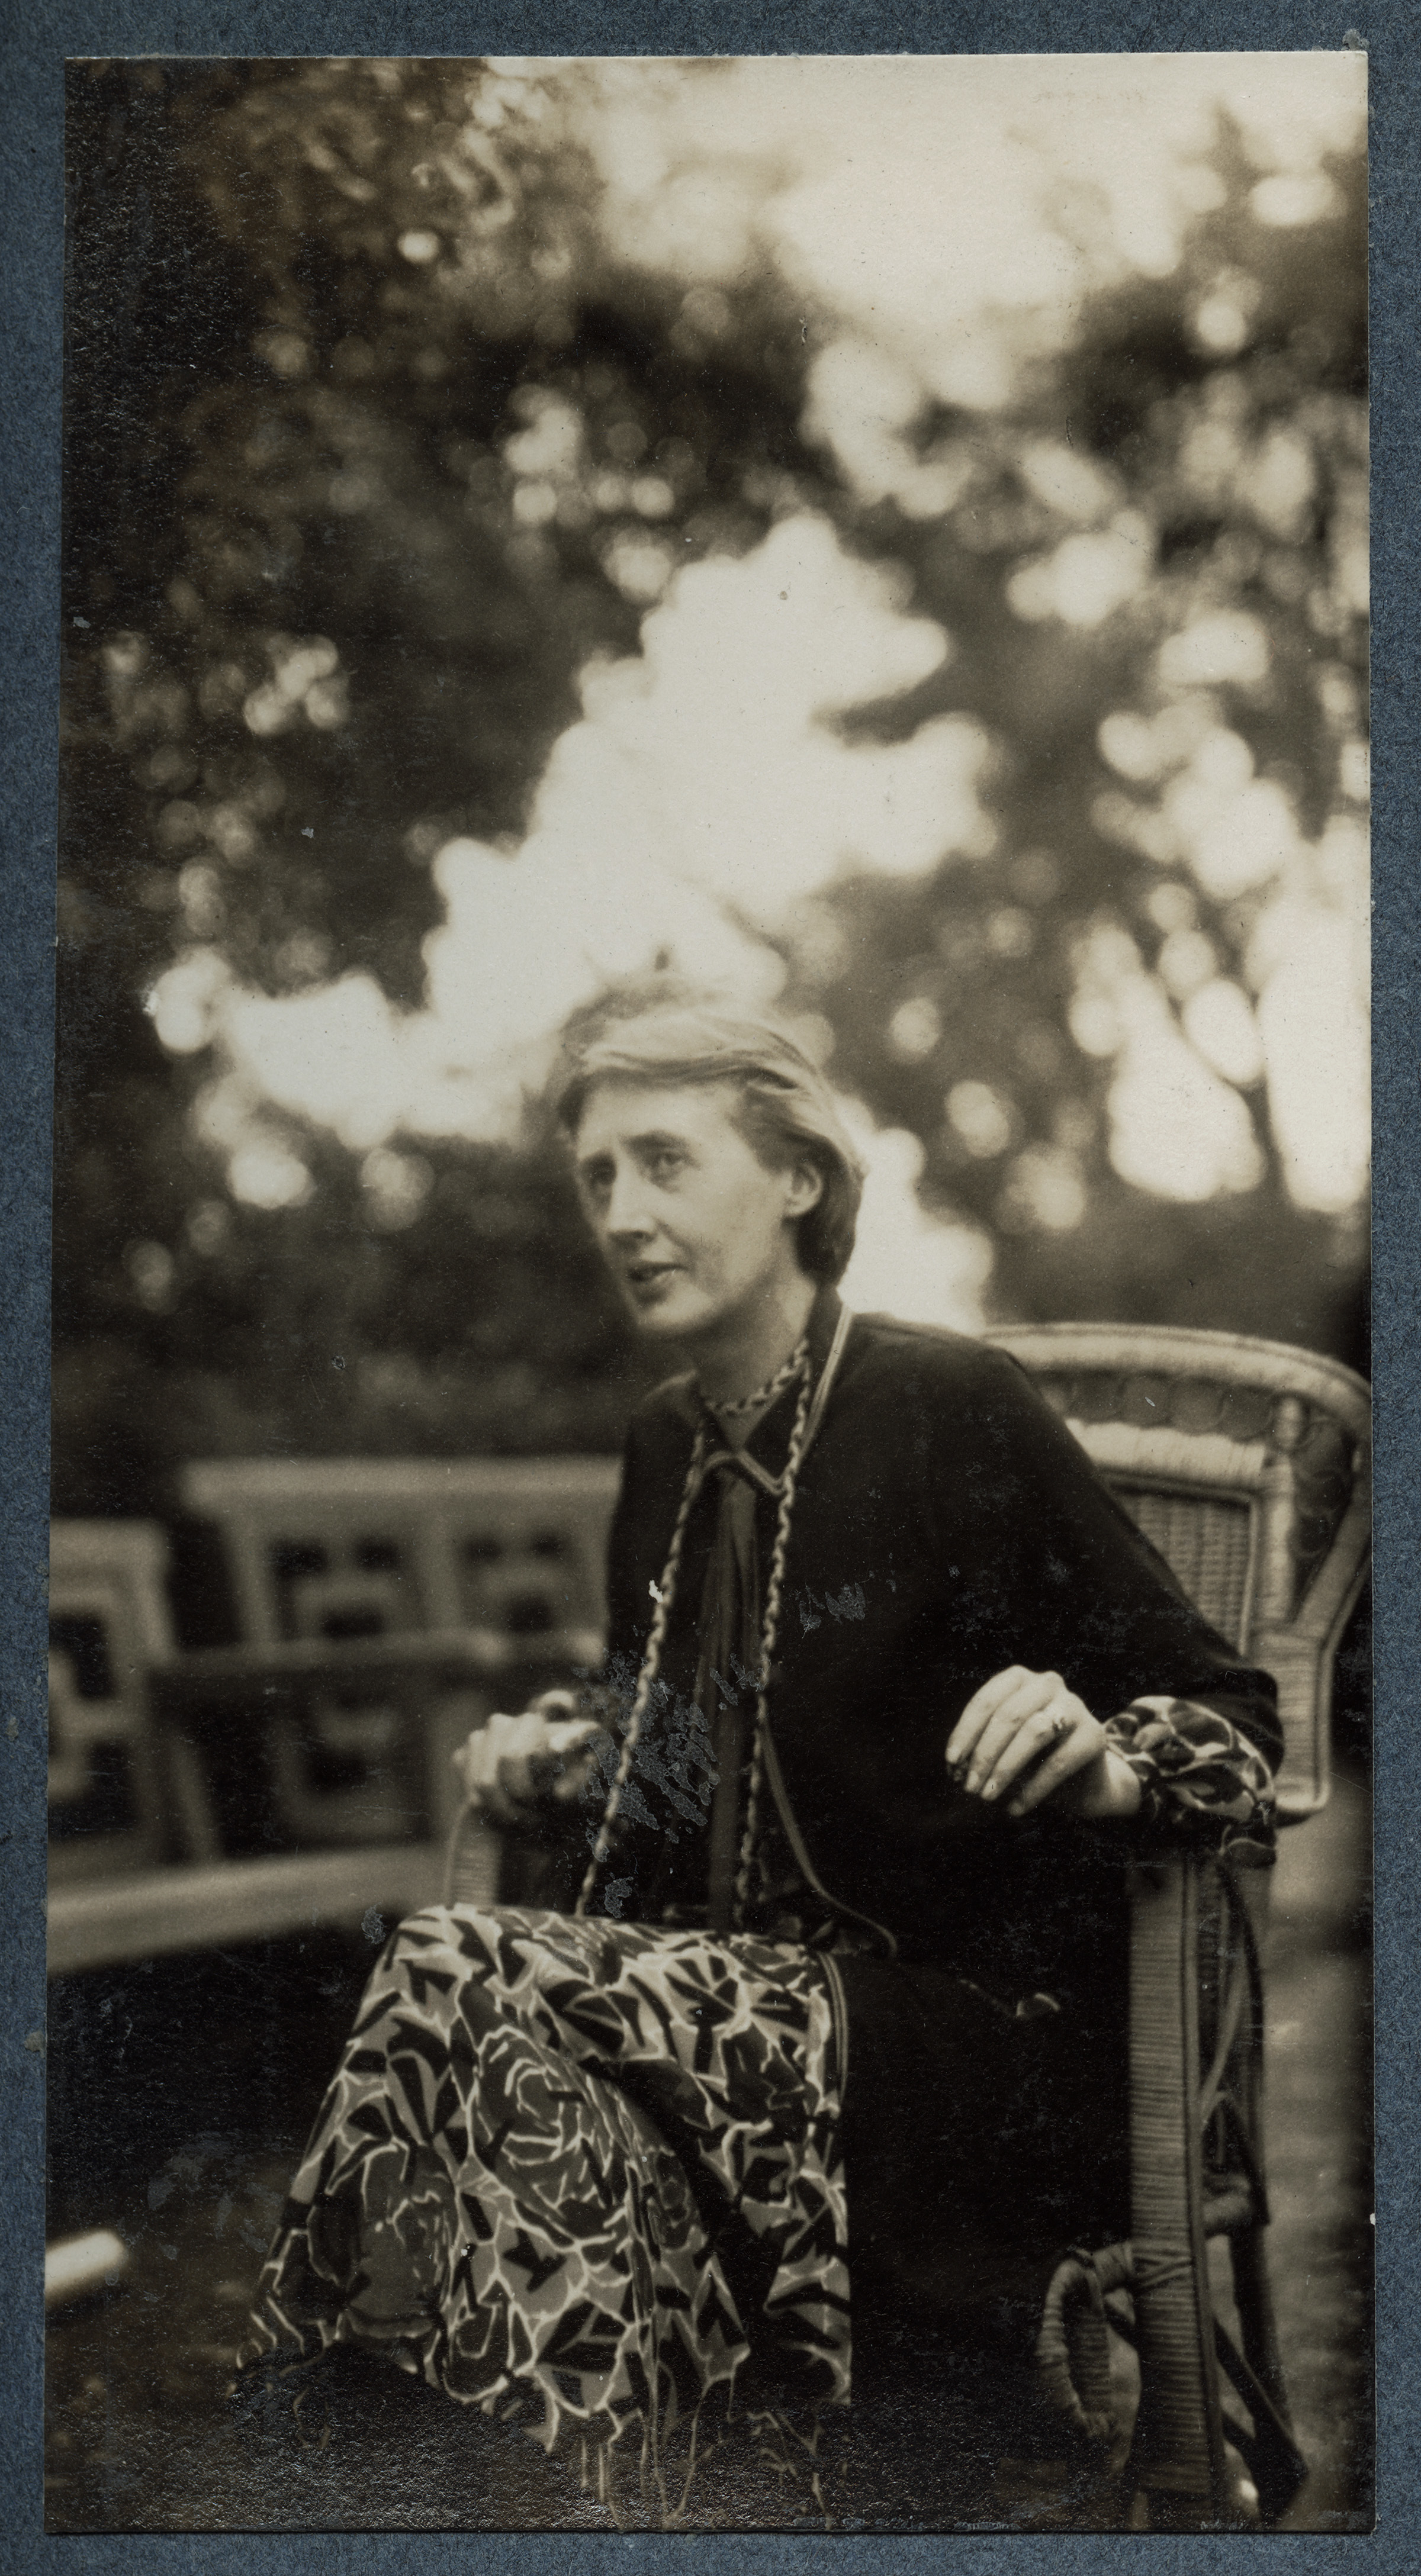 Virginia Woolf, photograph by Ottoline Morrell, 1926